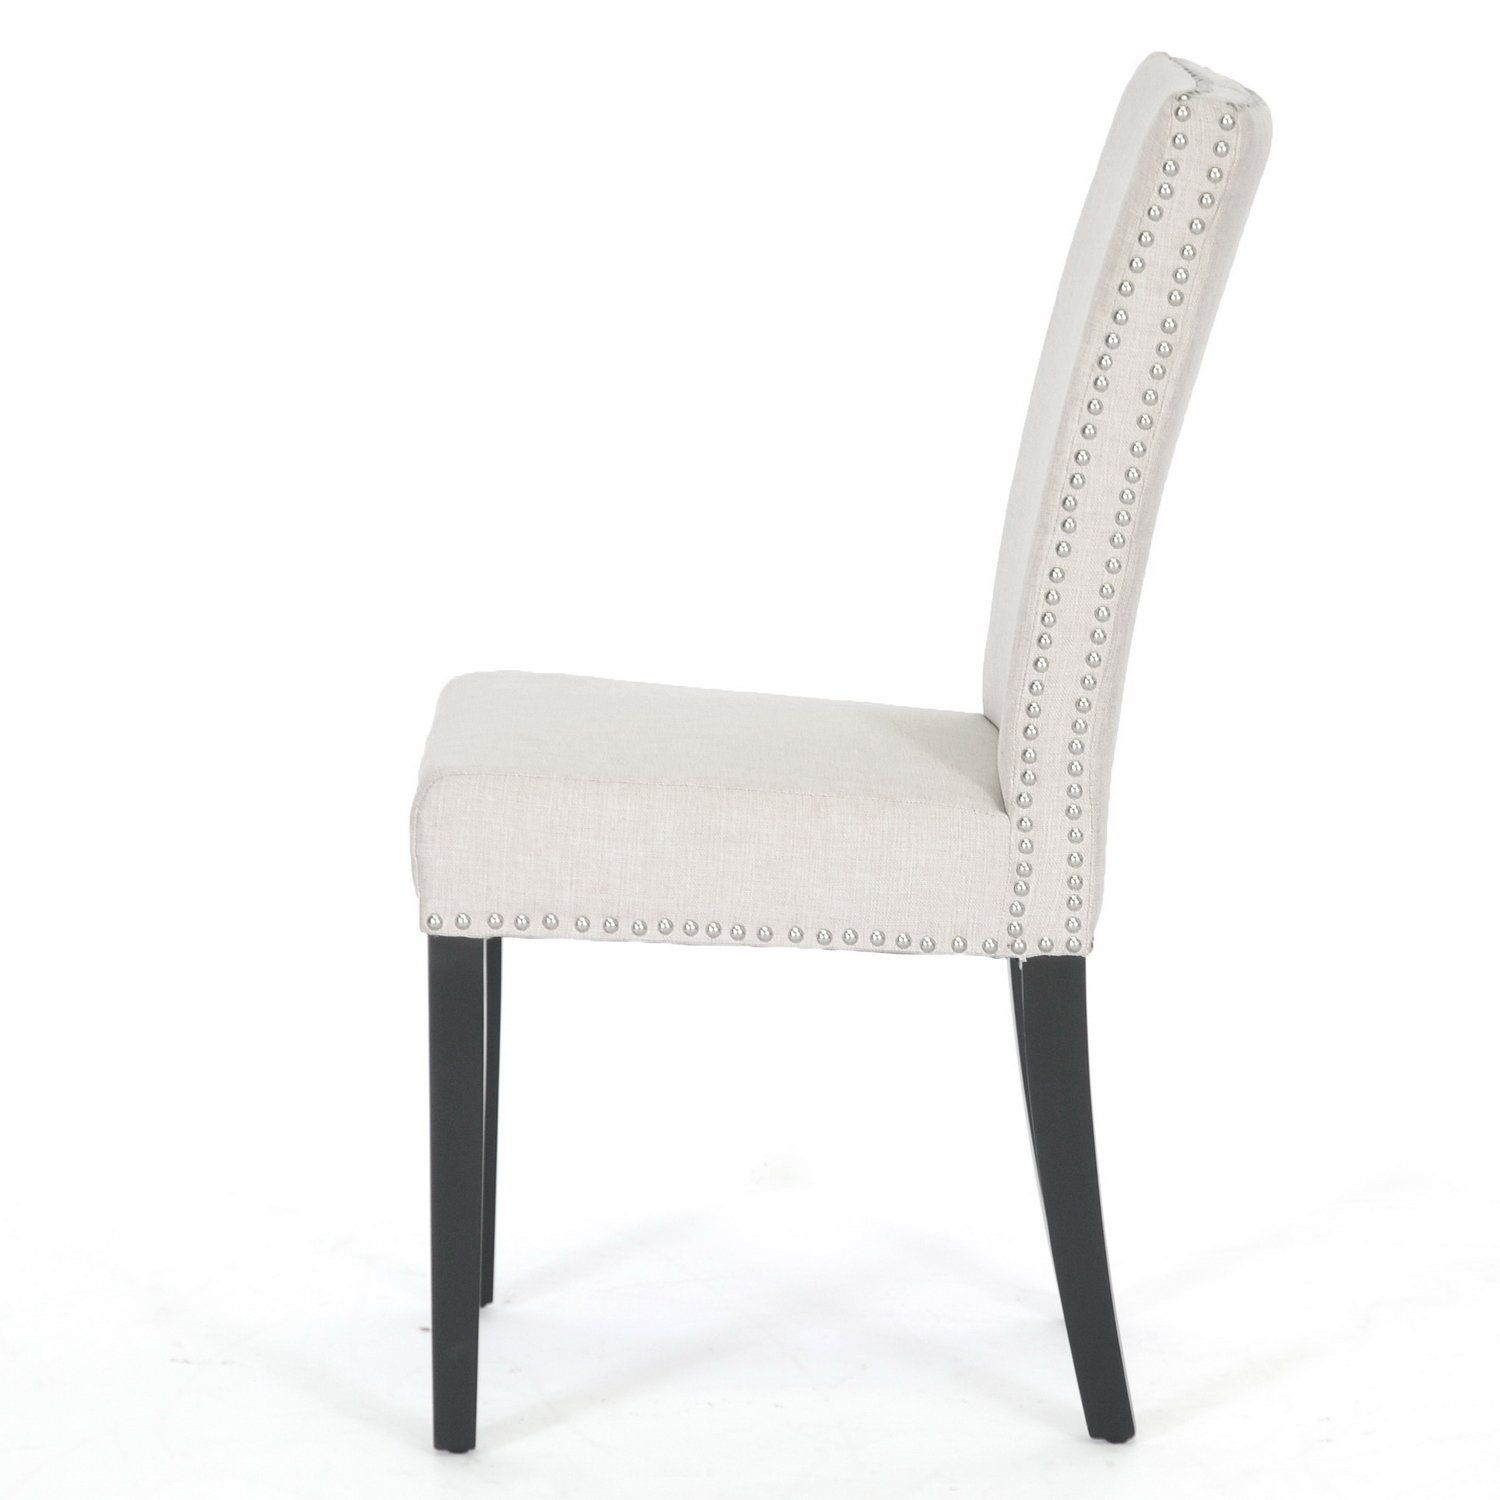 Black chair and white chair - Painting Of White Upholstered Dining Chair